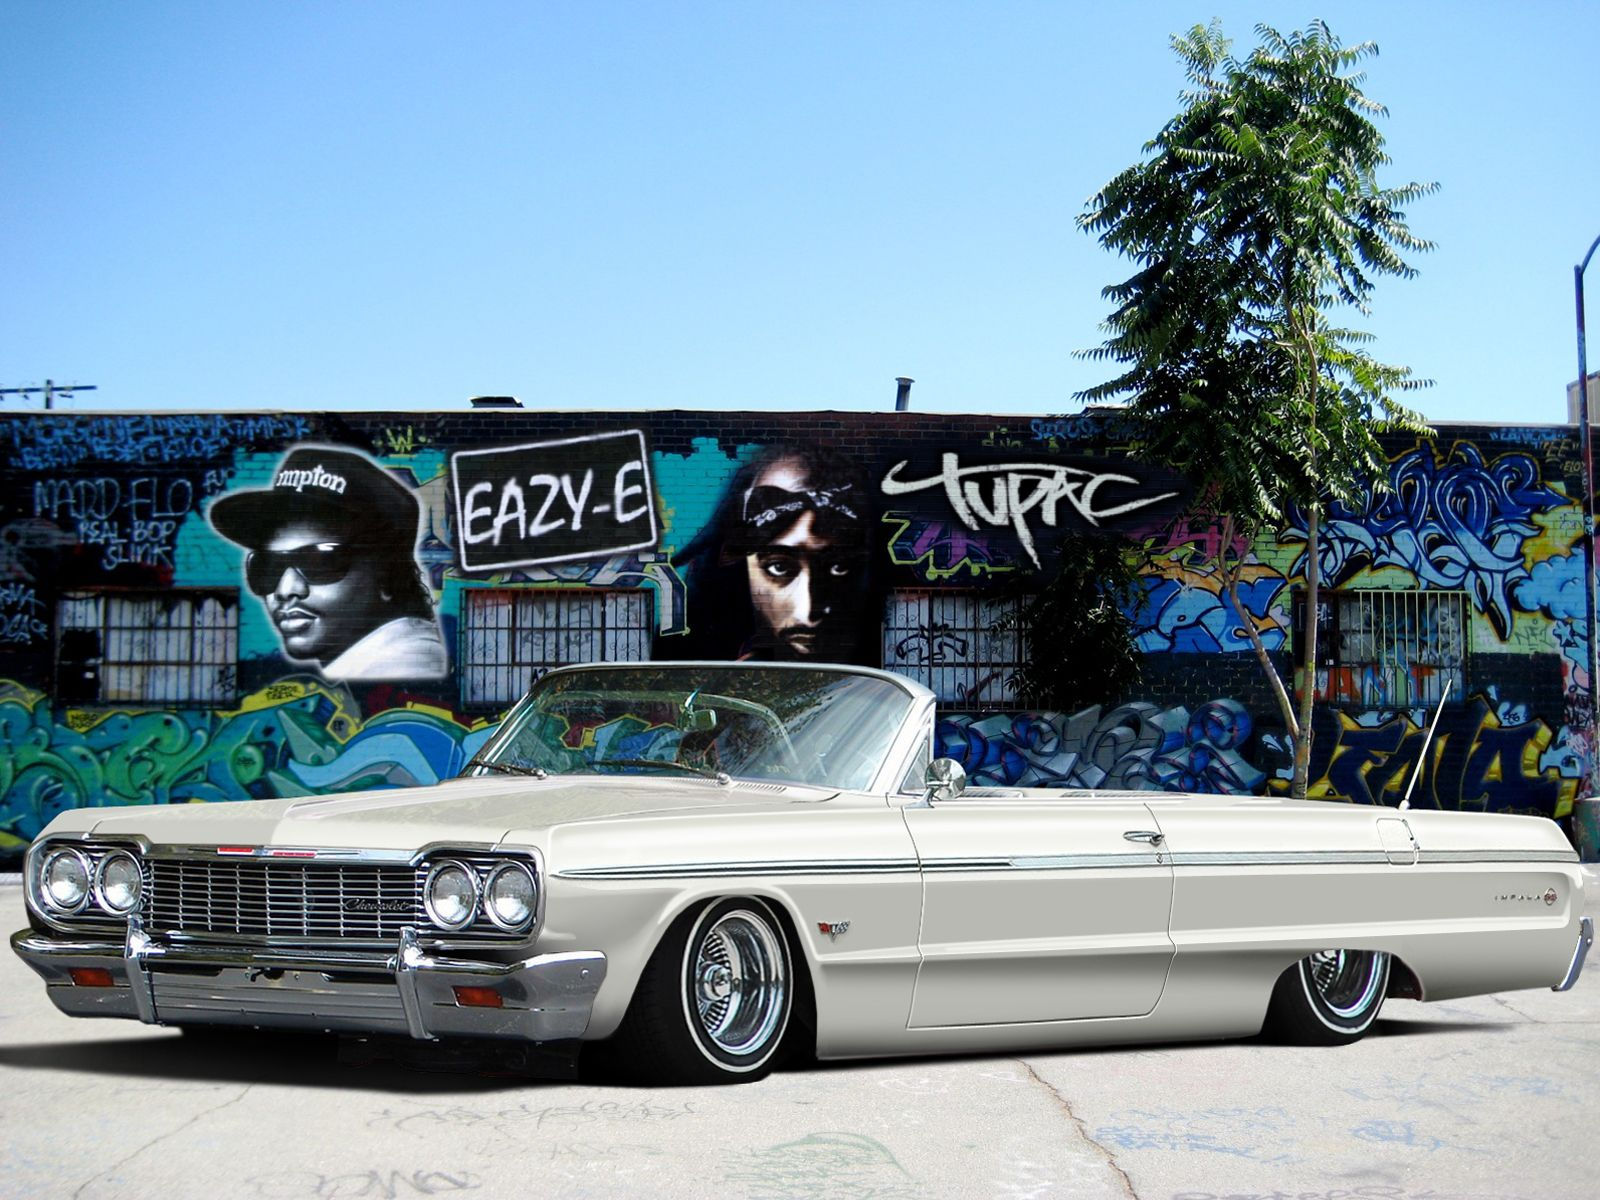 64 impala  Assorted  Pinterest  Chevy Love machine and 64